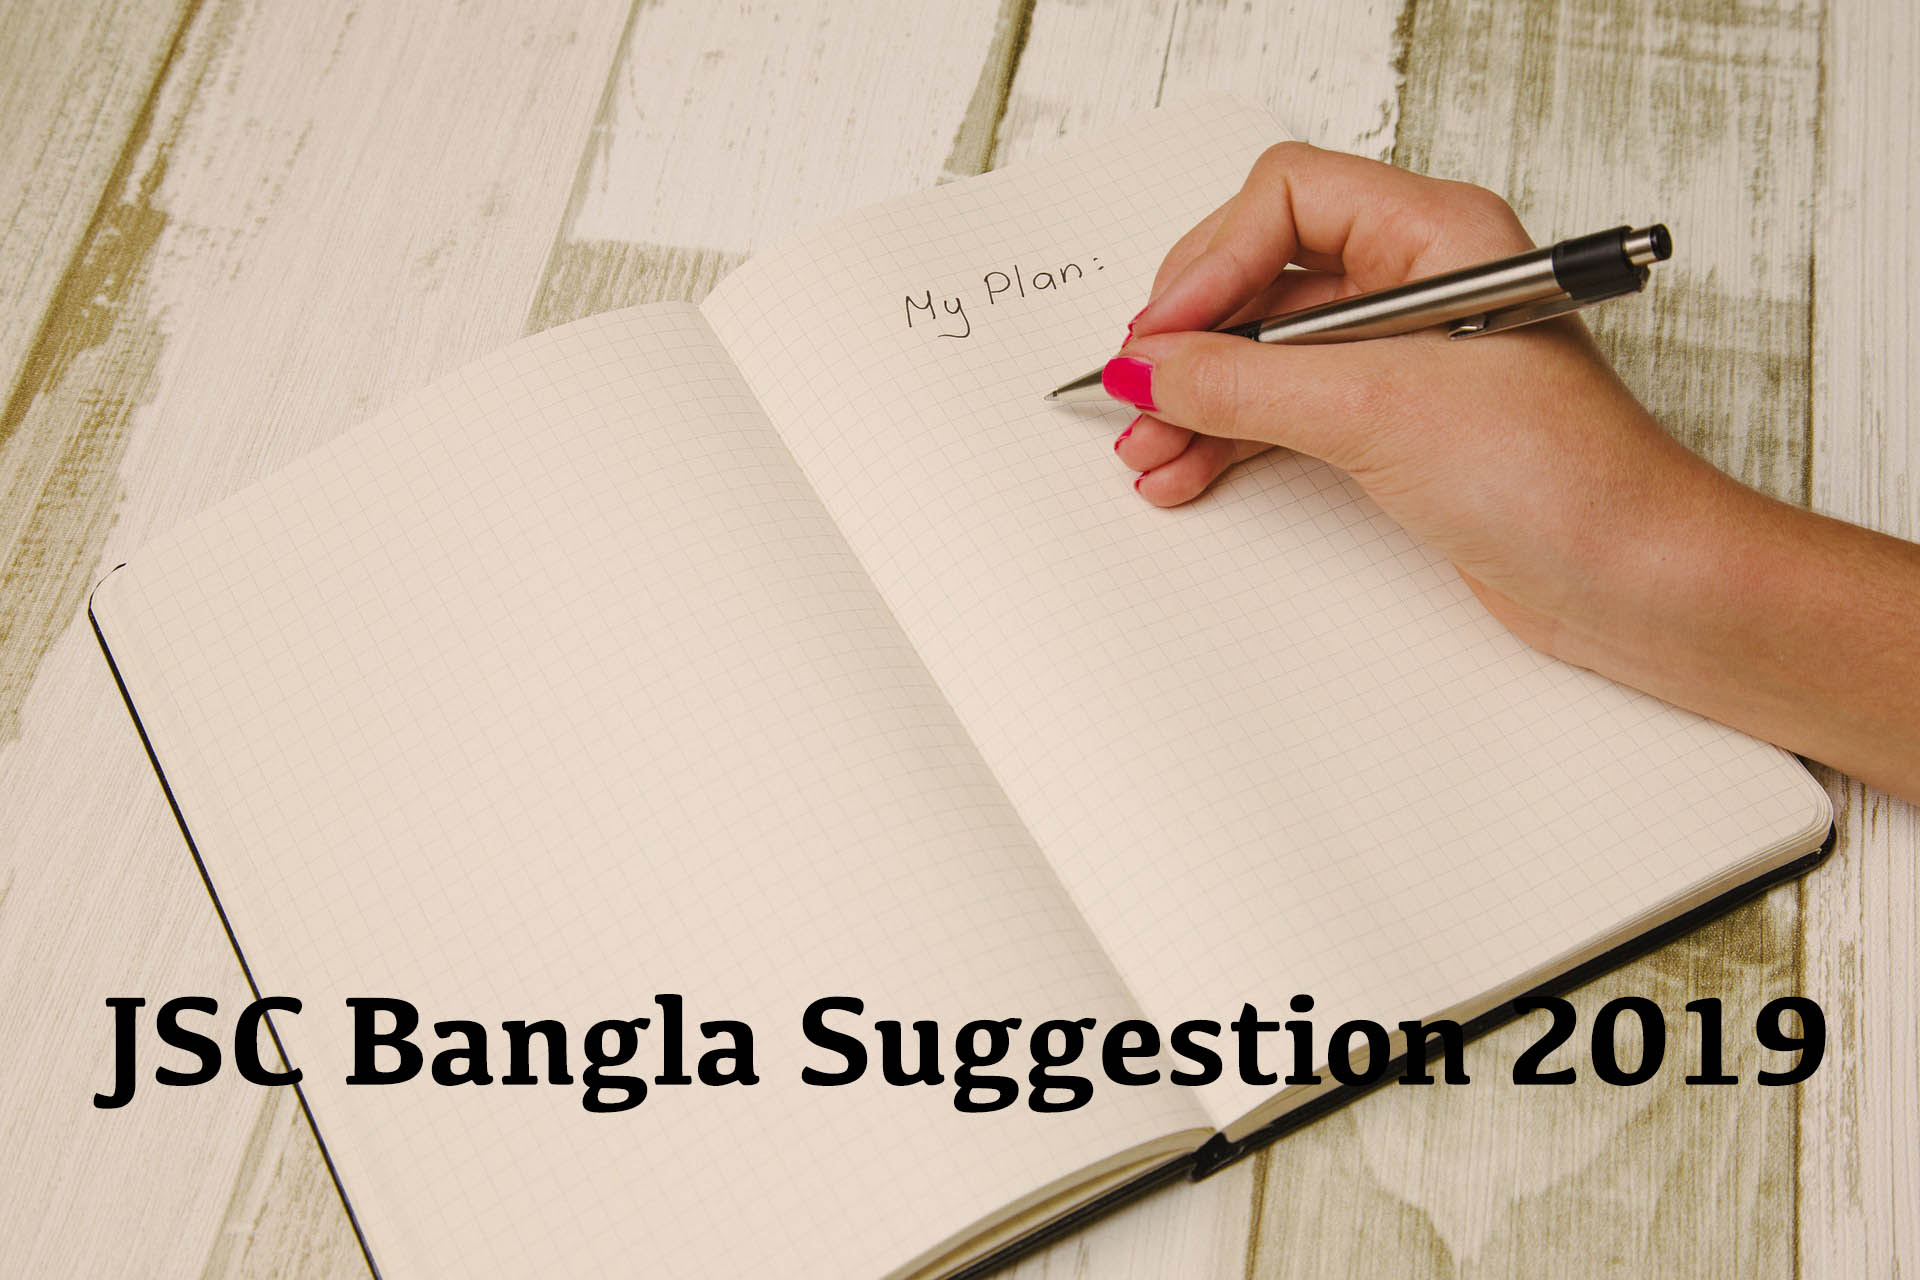 JSC Bangla Suggestion 2019